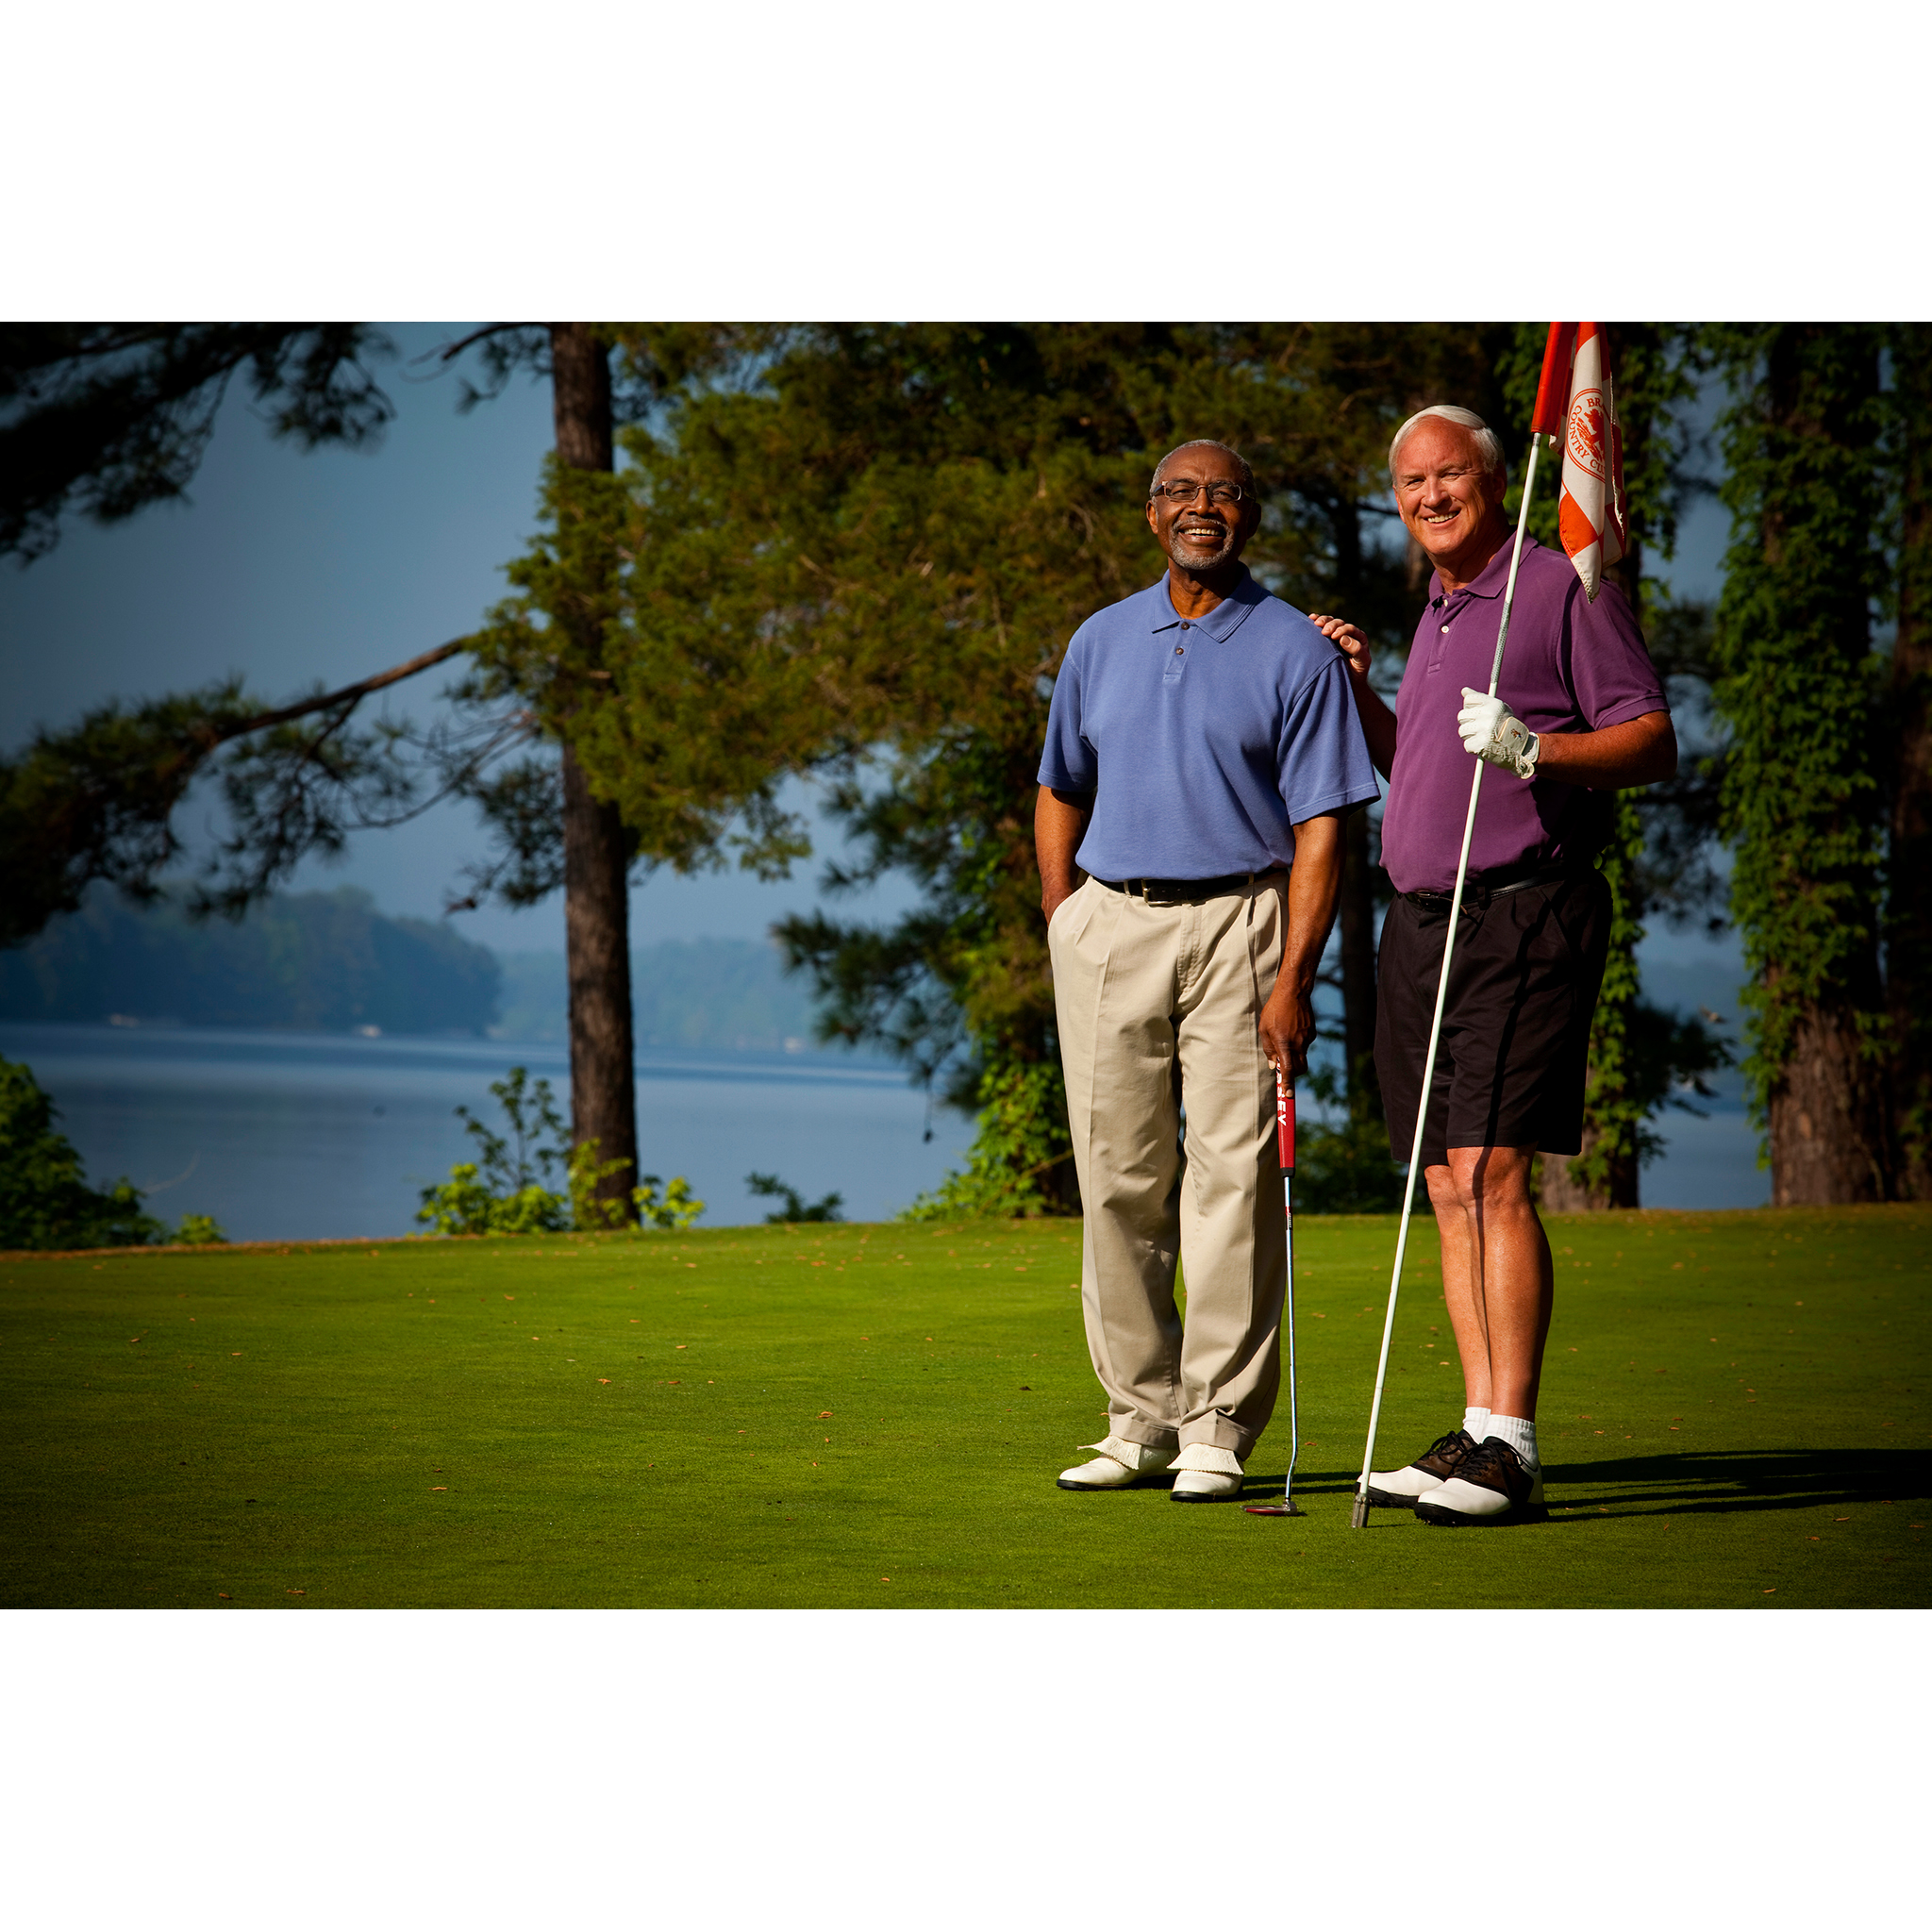 Photo of retired gentlemen on golf course green